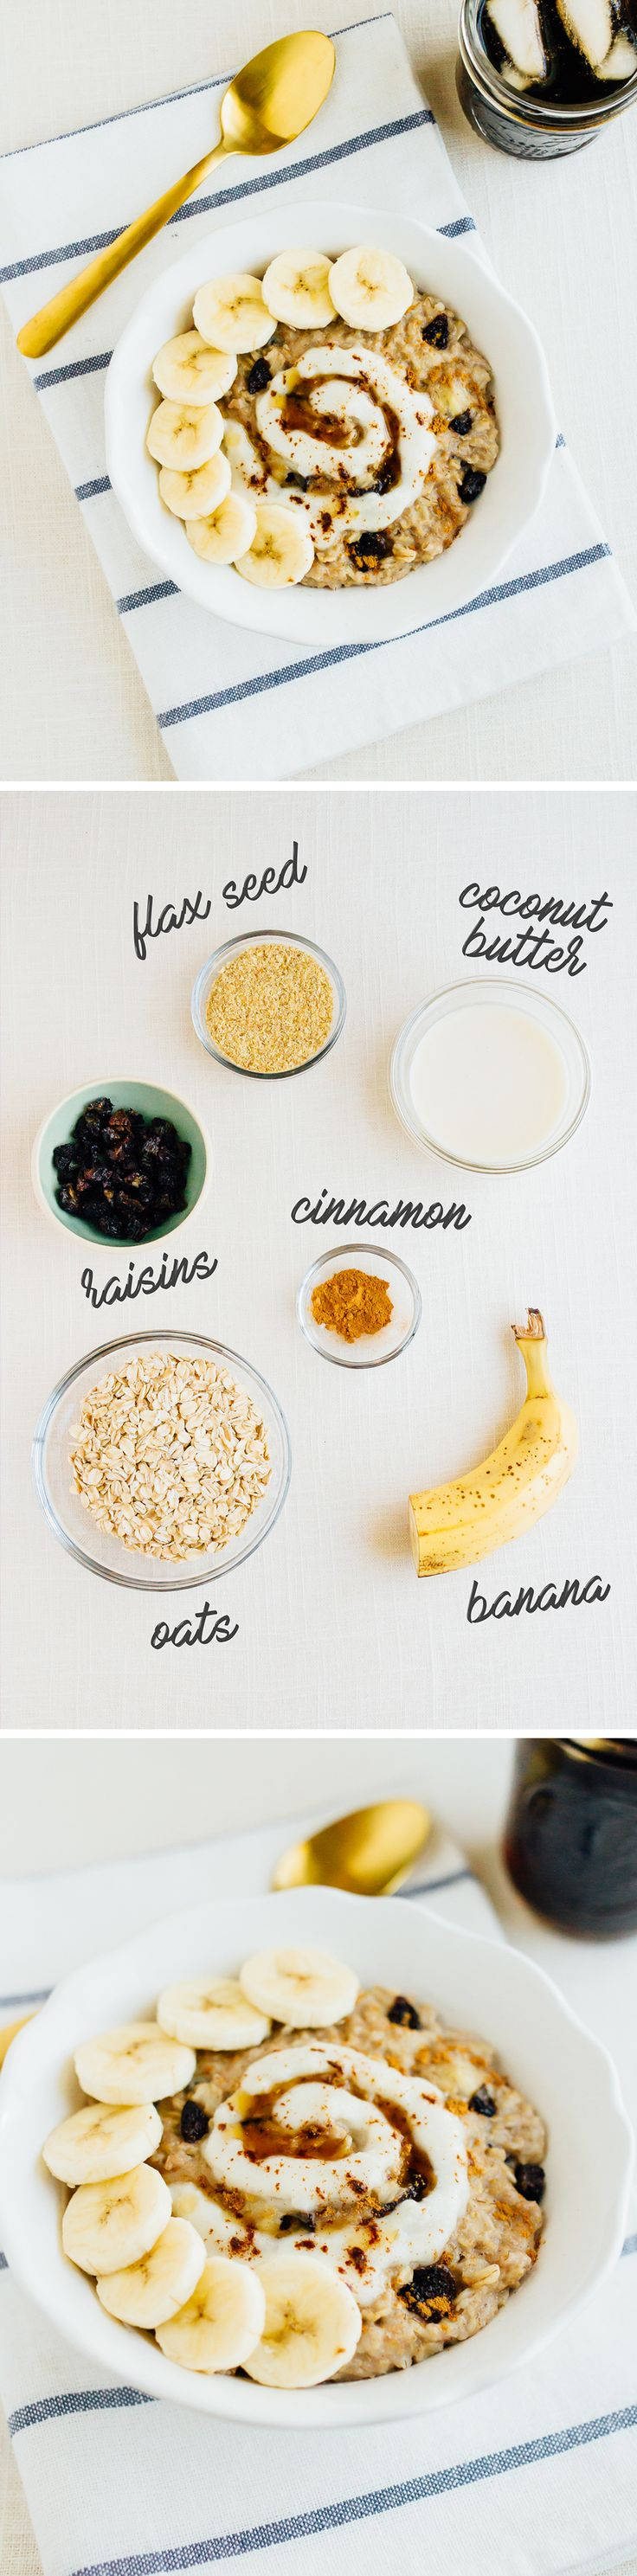 The BEST Cinnamon Raisin Oatmeal Recipe. A simple, yet healthy breakfast recipe that is perfect for weekdays. All clean eating ingredients are used for this healthy oatmeal recipe. Pin now to try later!